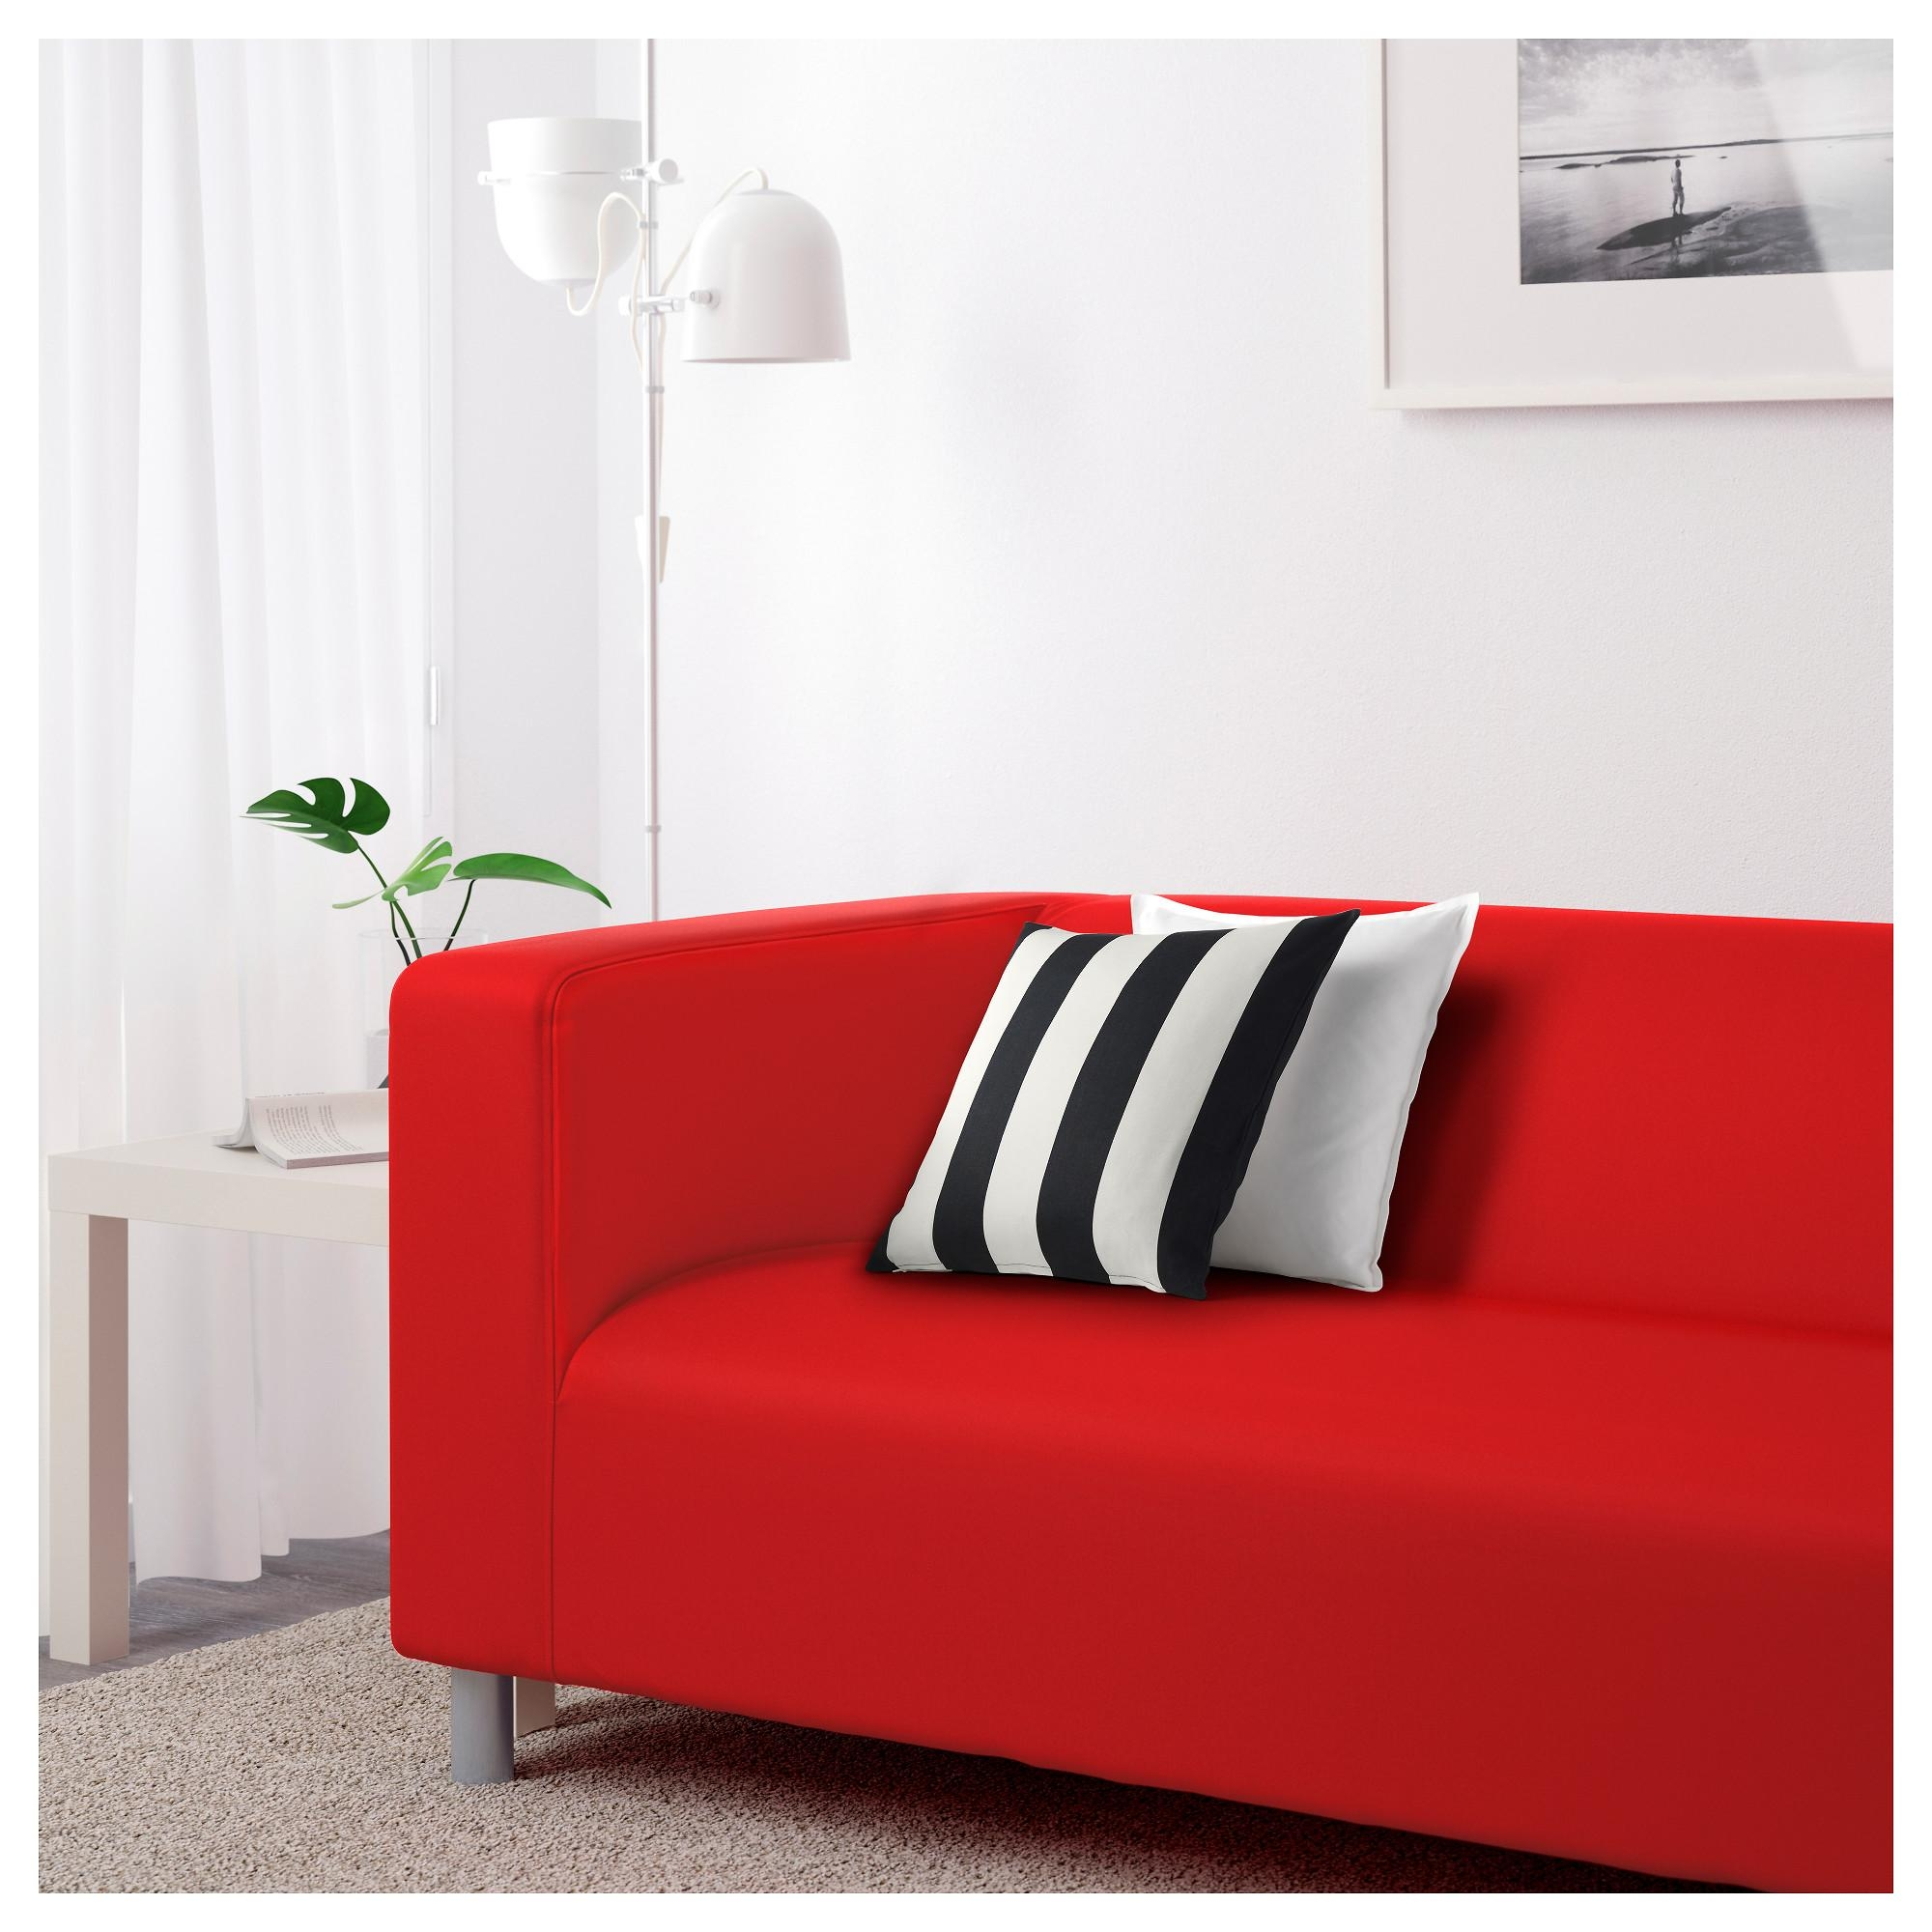 Klippan Two Seat Sofa Flackarp Red Orange – Ikea Pertaining To Orange Ikea Sofas (View 16 of 20)